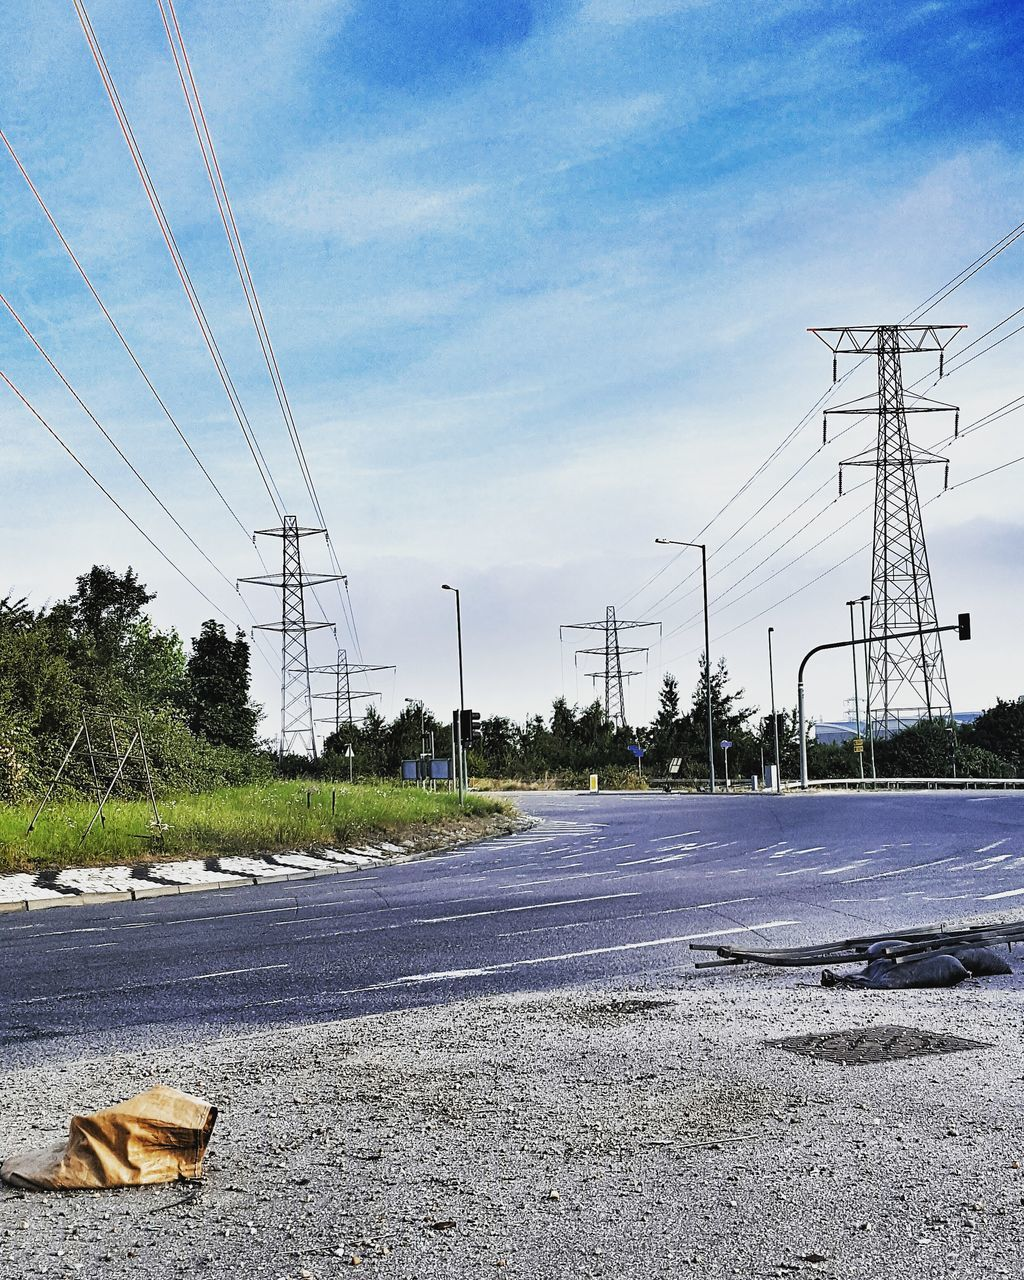 cable, electricity pylon, electricity, power line, power supply, fuel and power generation, connection, sky, road, no people, transportation, day, technology, outdoors, landscape, tree, nature, telephone line